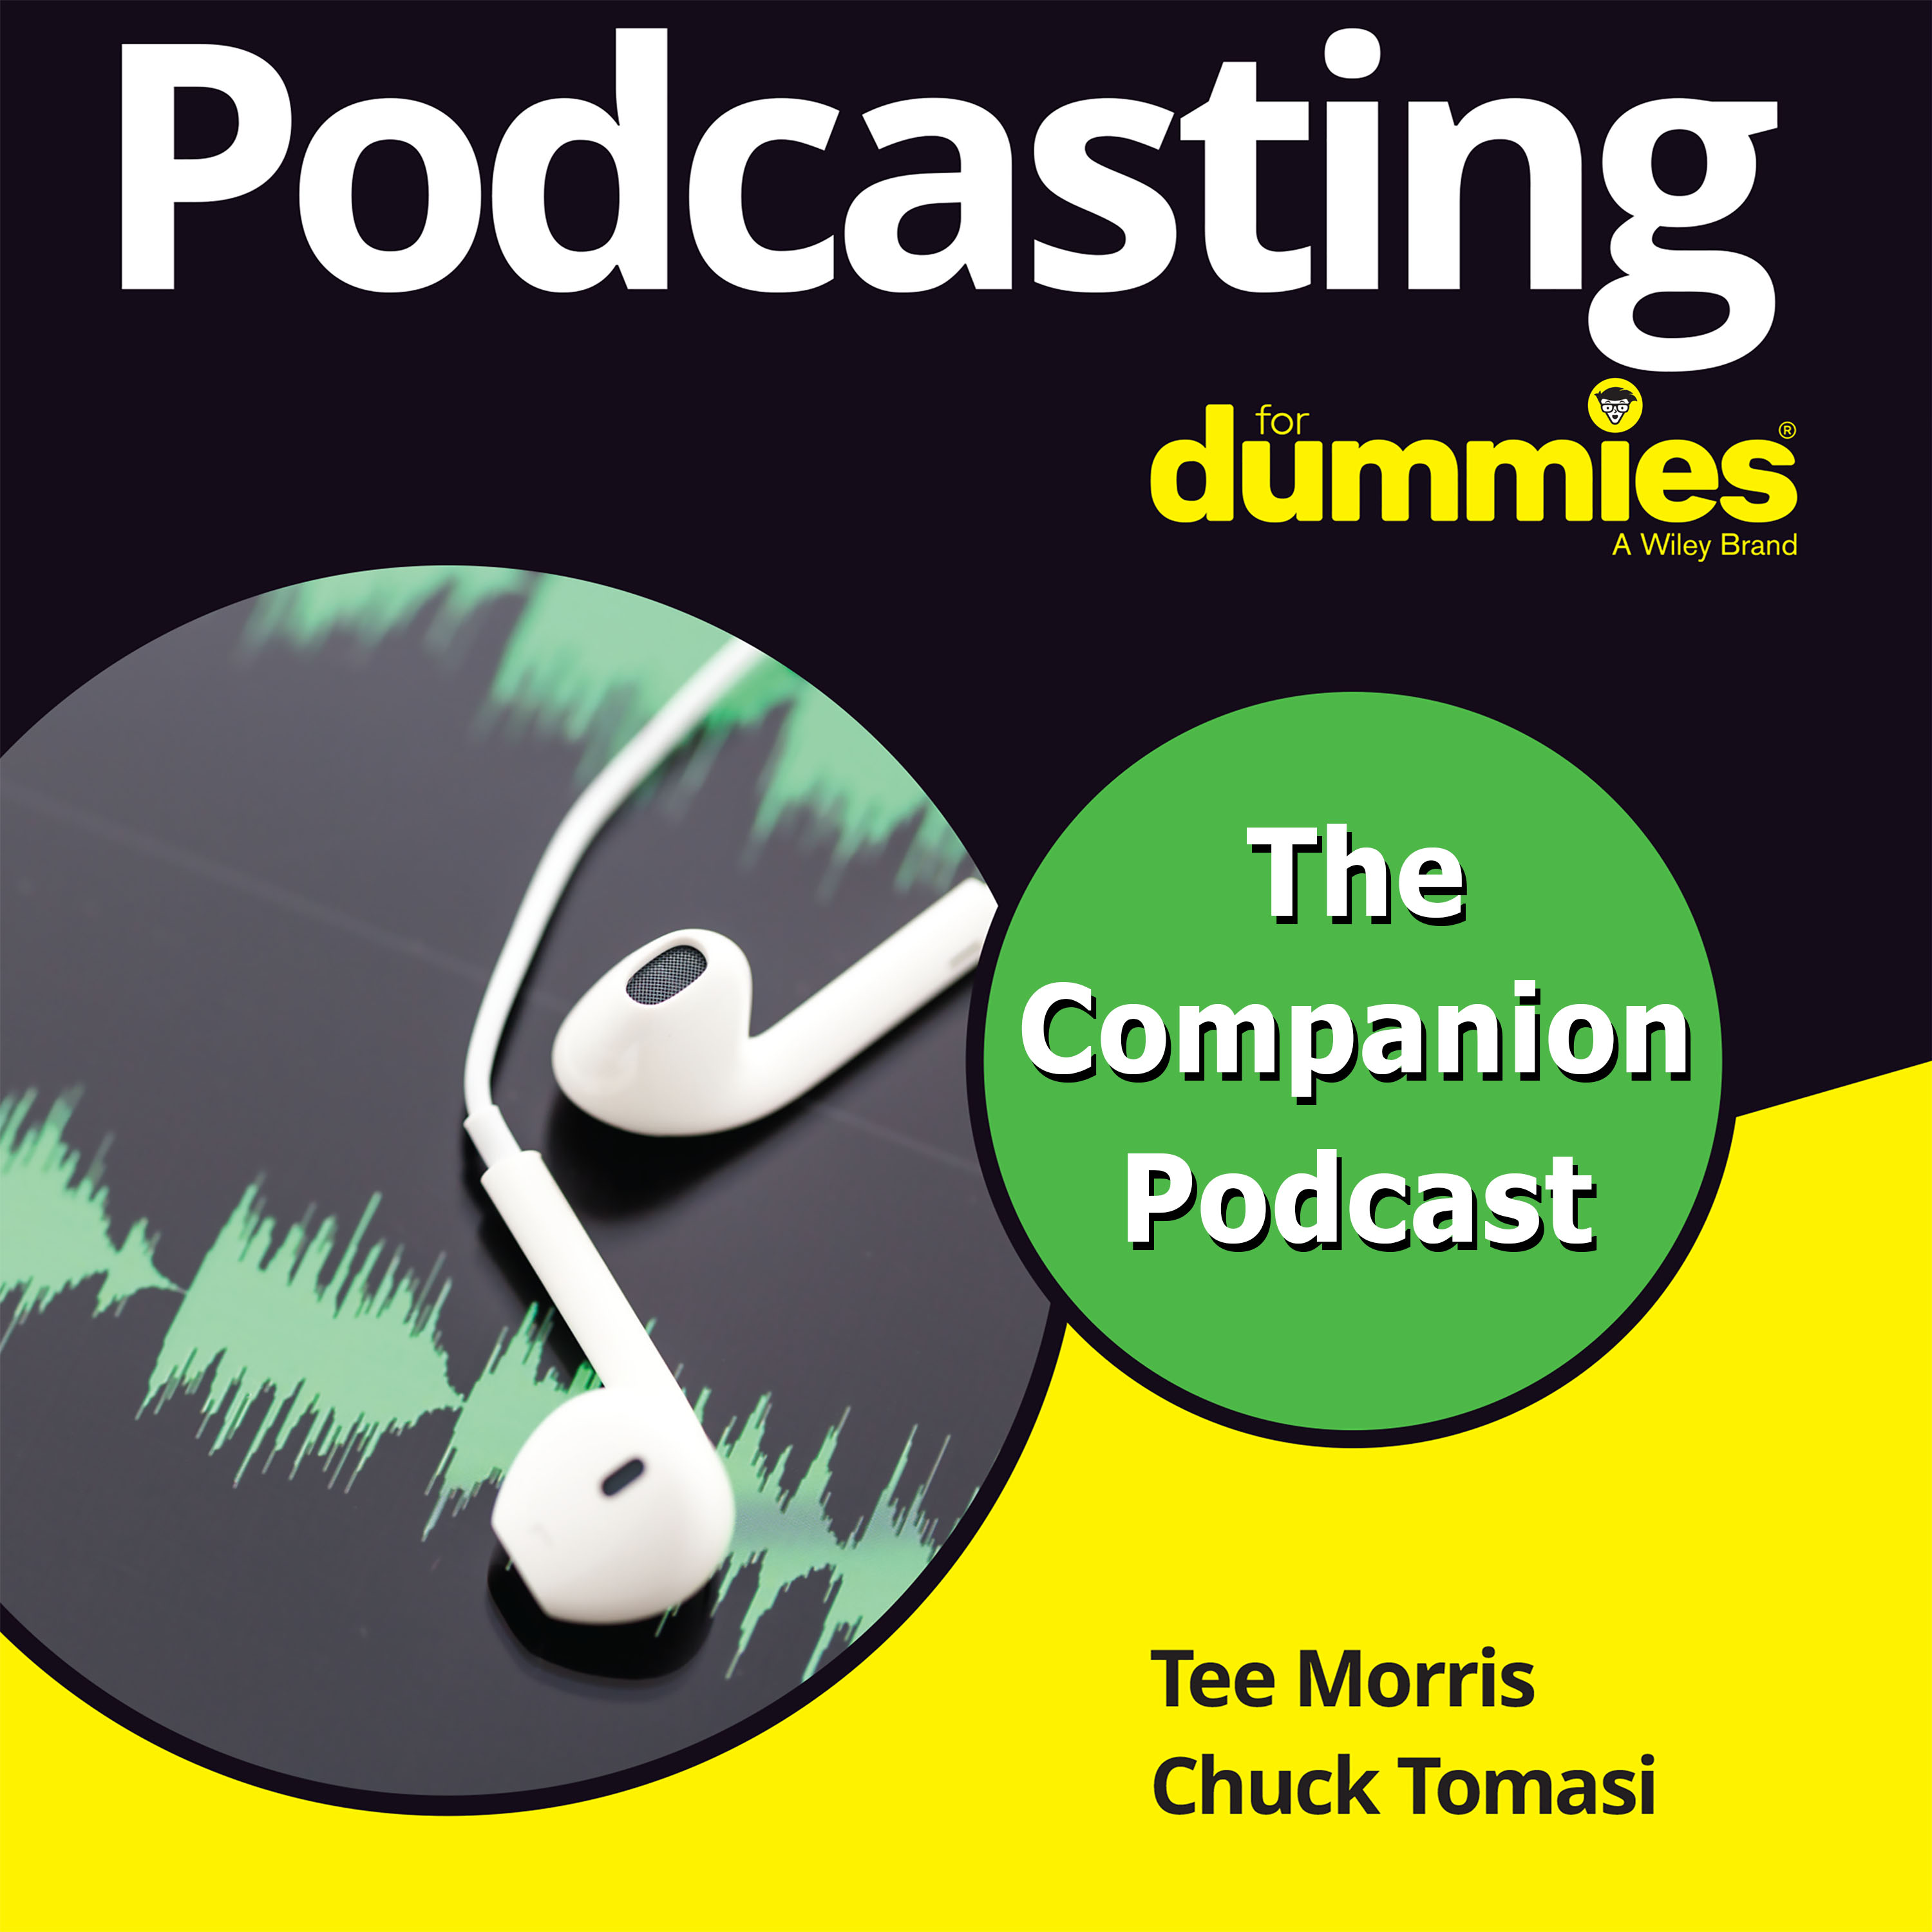 Podcasting for Dummies - News and Companion Podcast